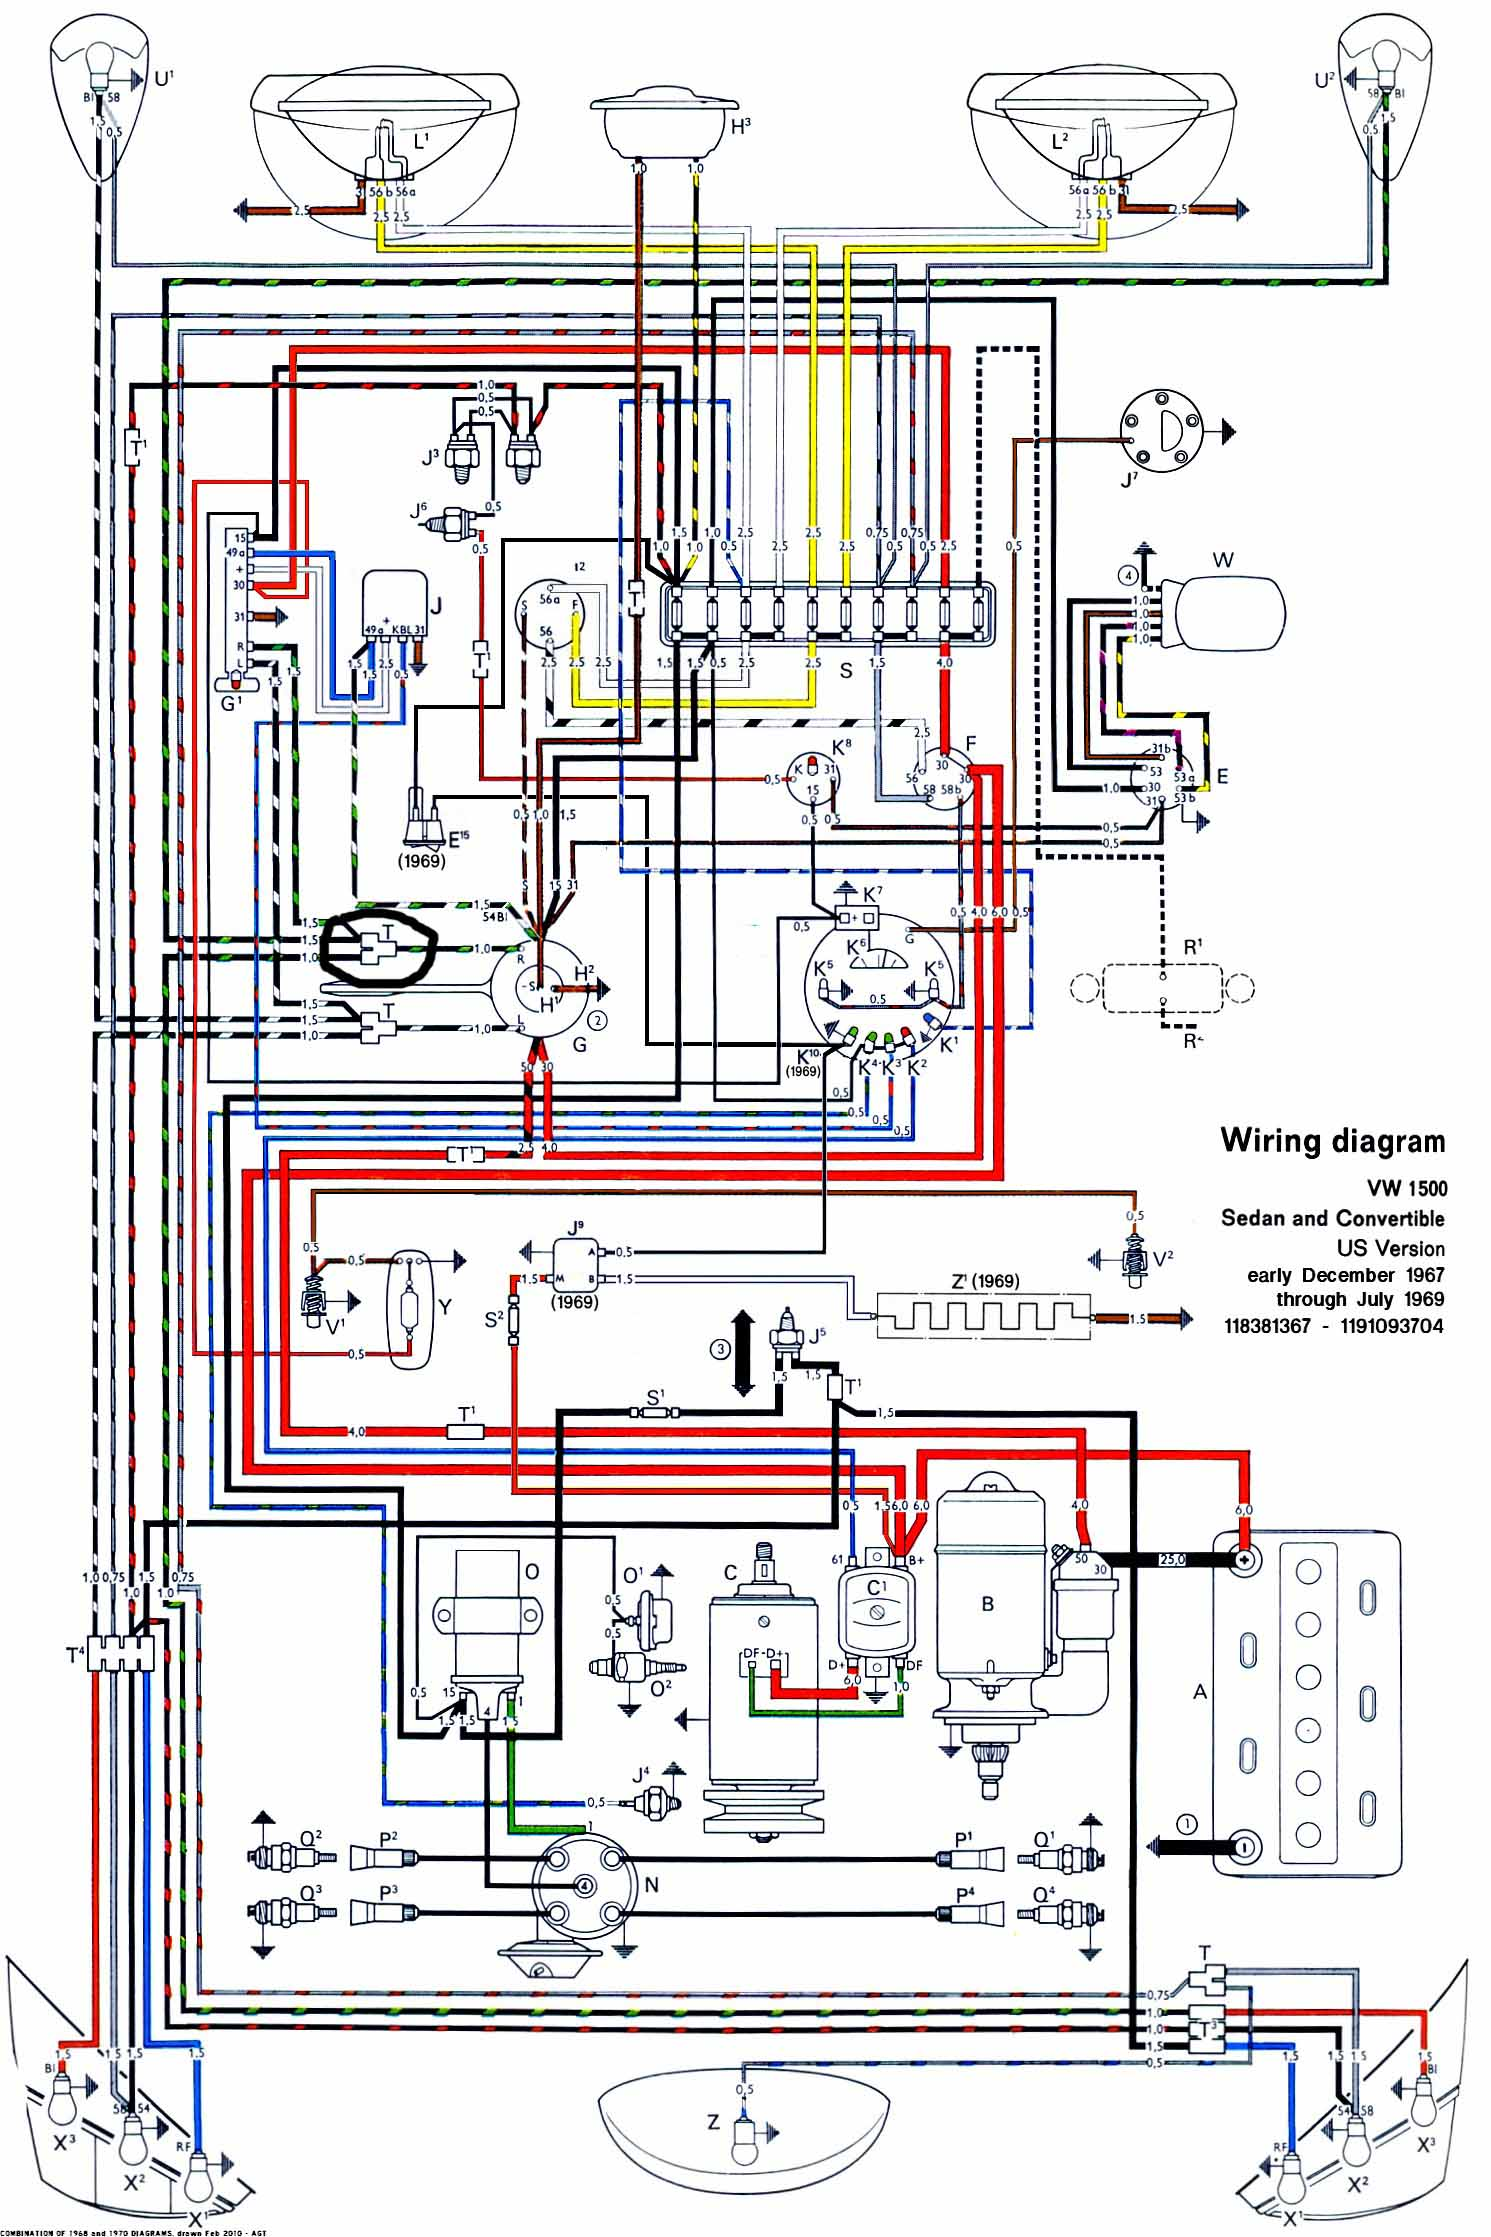 hight resolution of wiring diagram for 1971 vw beetle the wiring diagram vw bug wiring 1965 vw beetle wiring